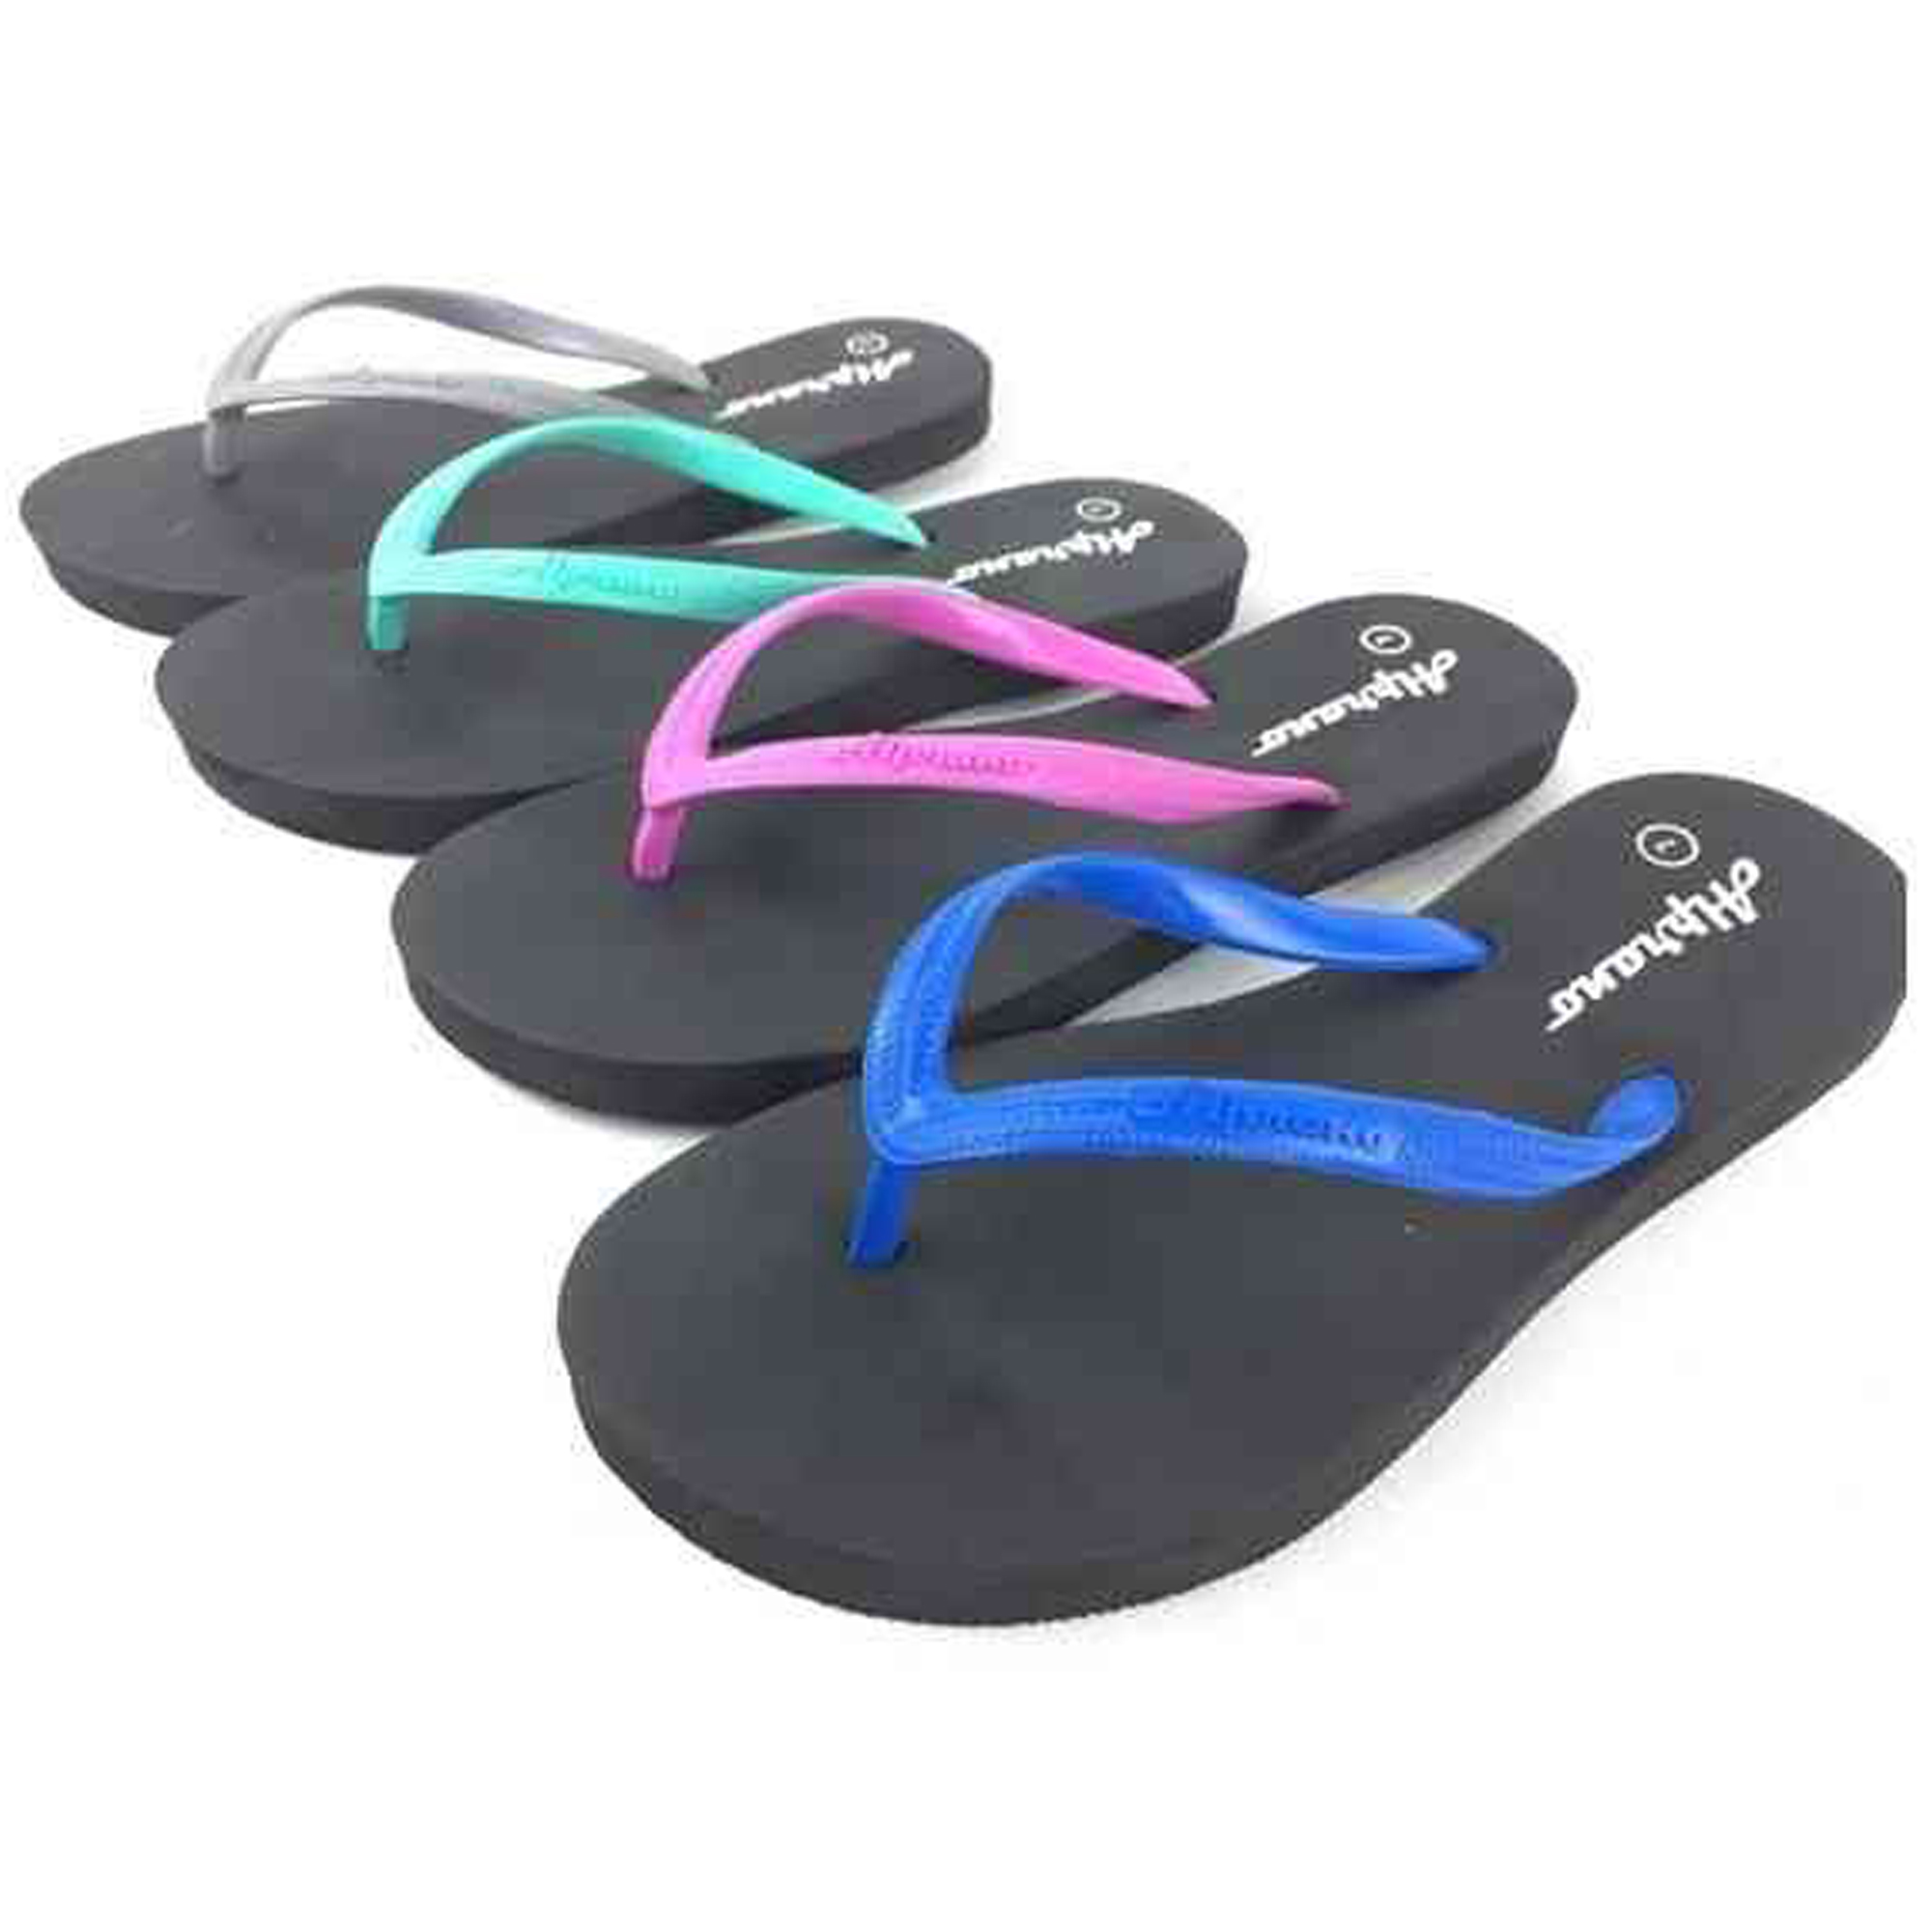 JN-APL 07 (UK7) Alprano Slipper